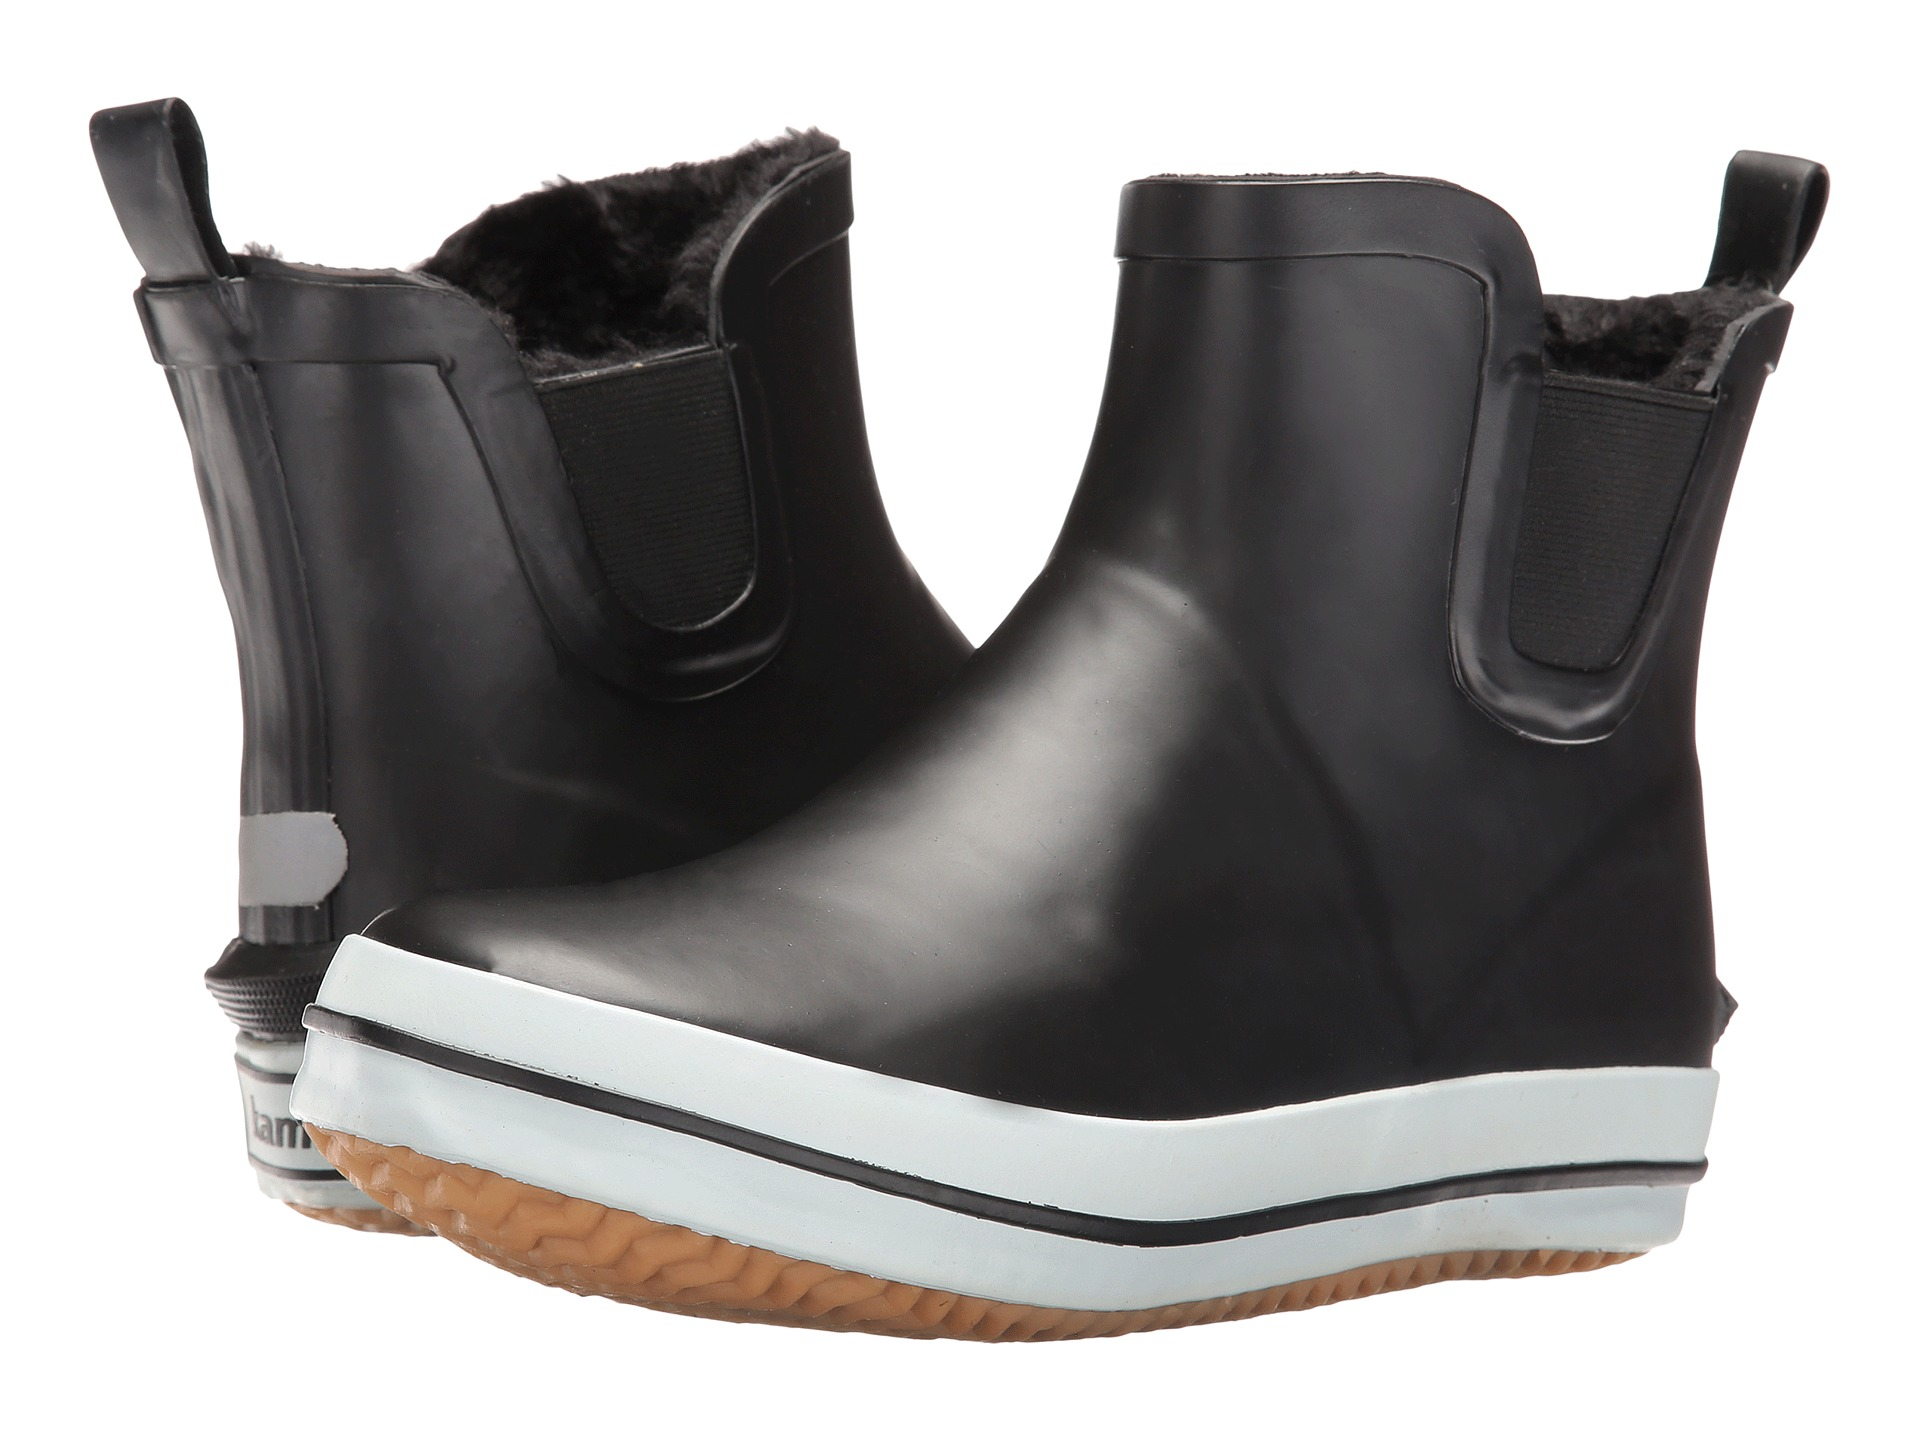 Boots, Snow Boots, Black, Women | Shipped Free at Zappos